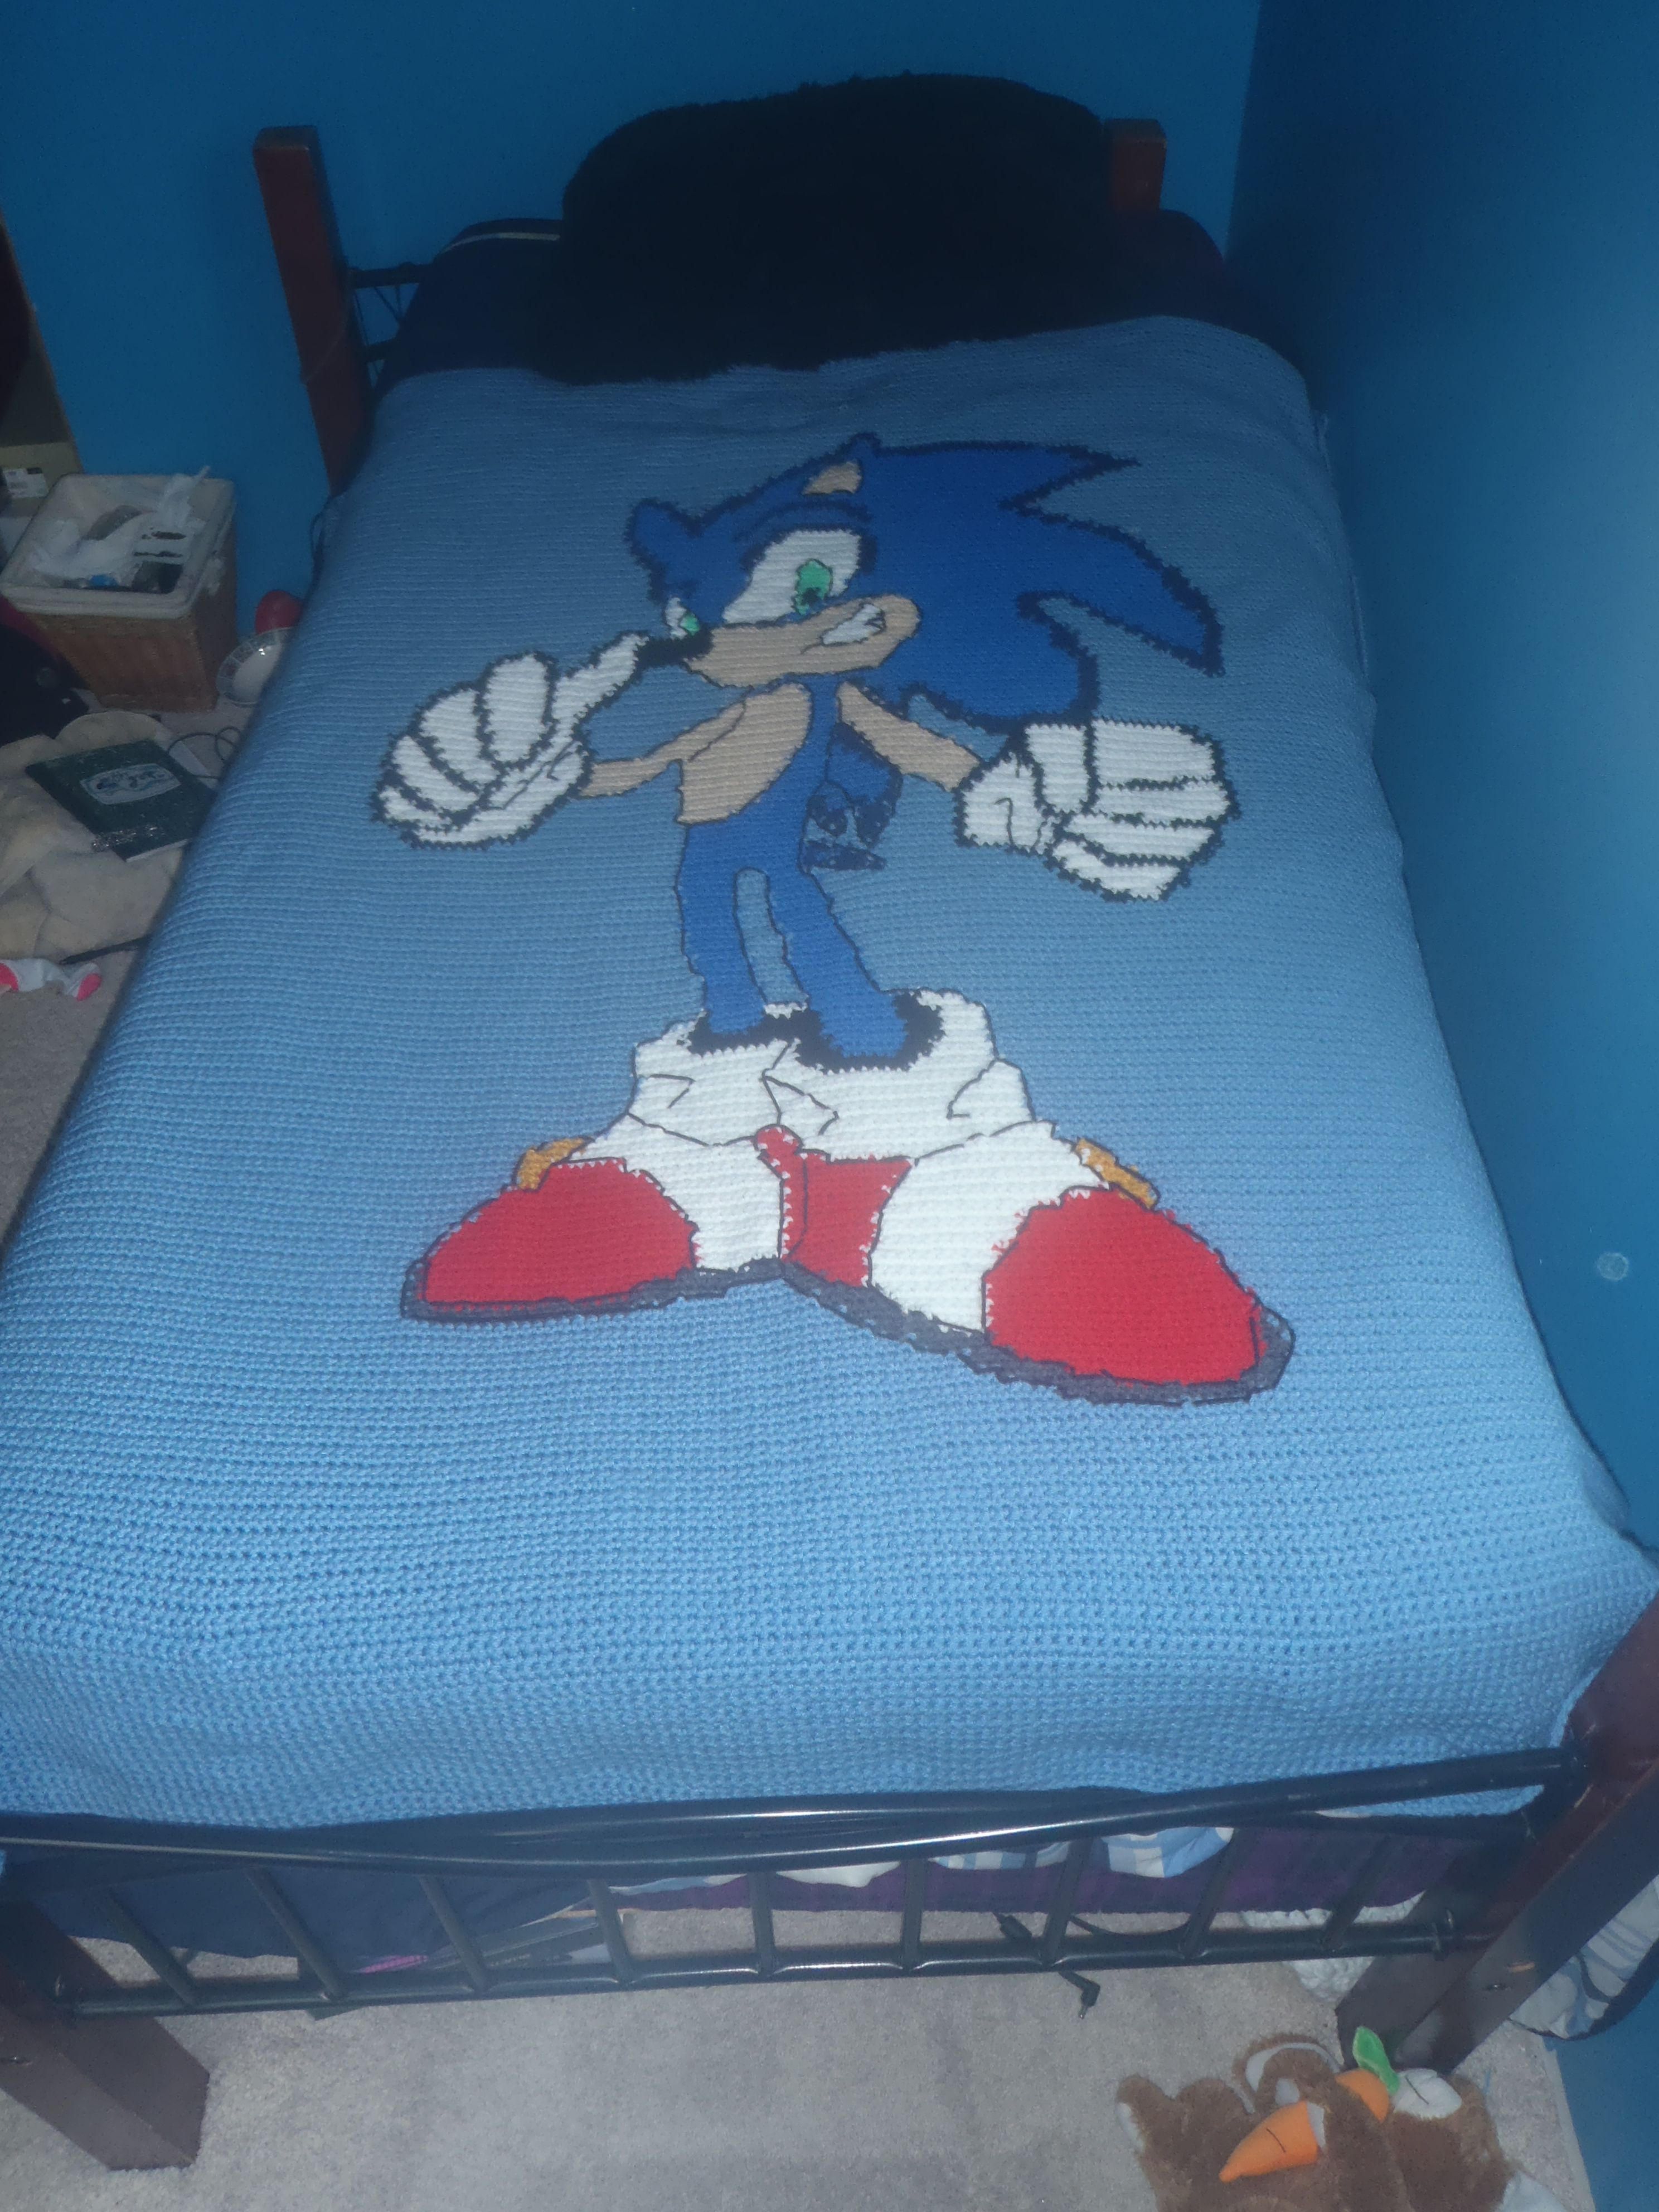 How to make your own female sonic character ehow - Crochet Sonic The Hedgehog Afghan Blanket Doodle Ideassonic The Hedgehogpixel Crochethedgehogscrochet Afghanscrochet Blanketsafghan Blanket Diy